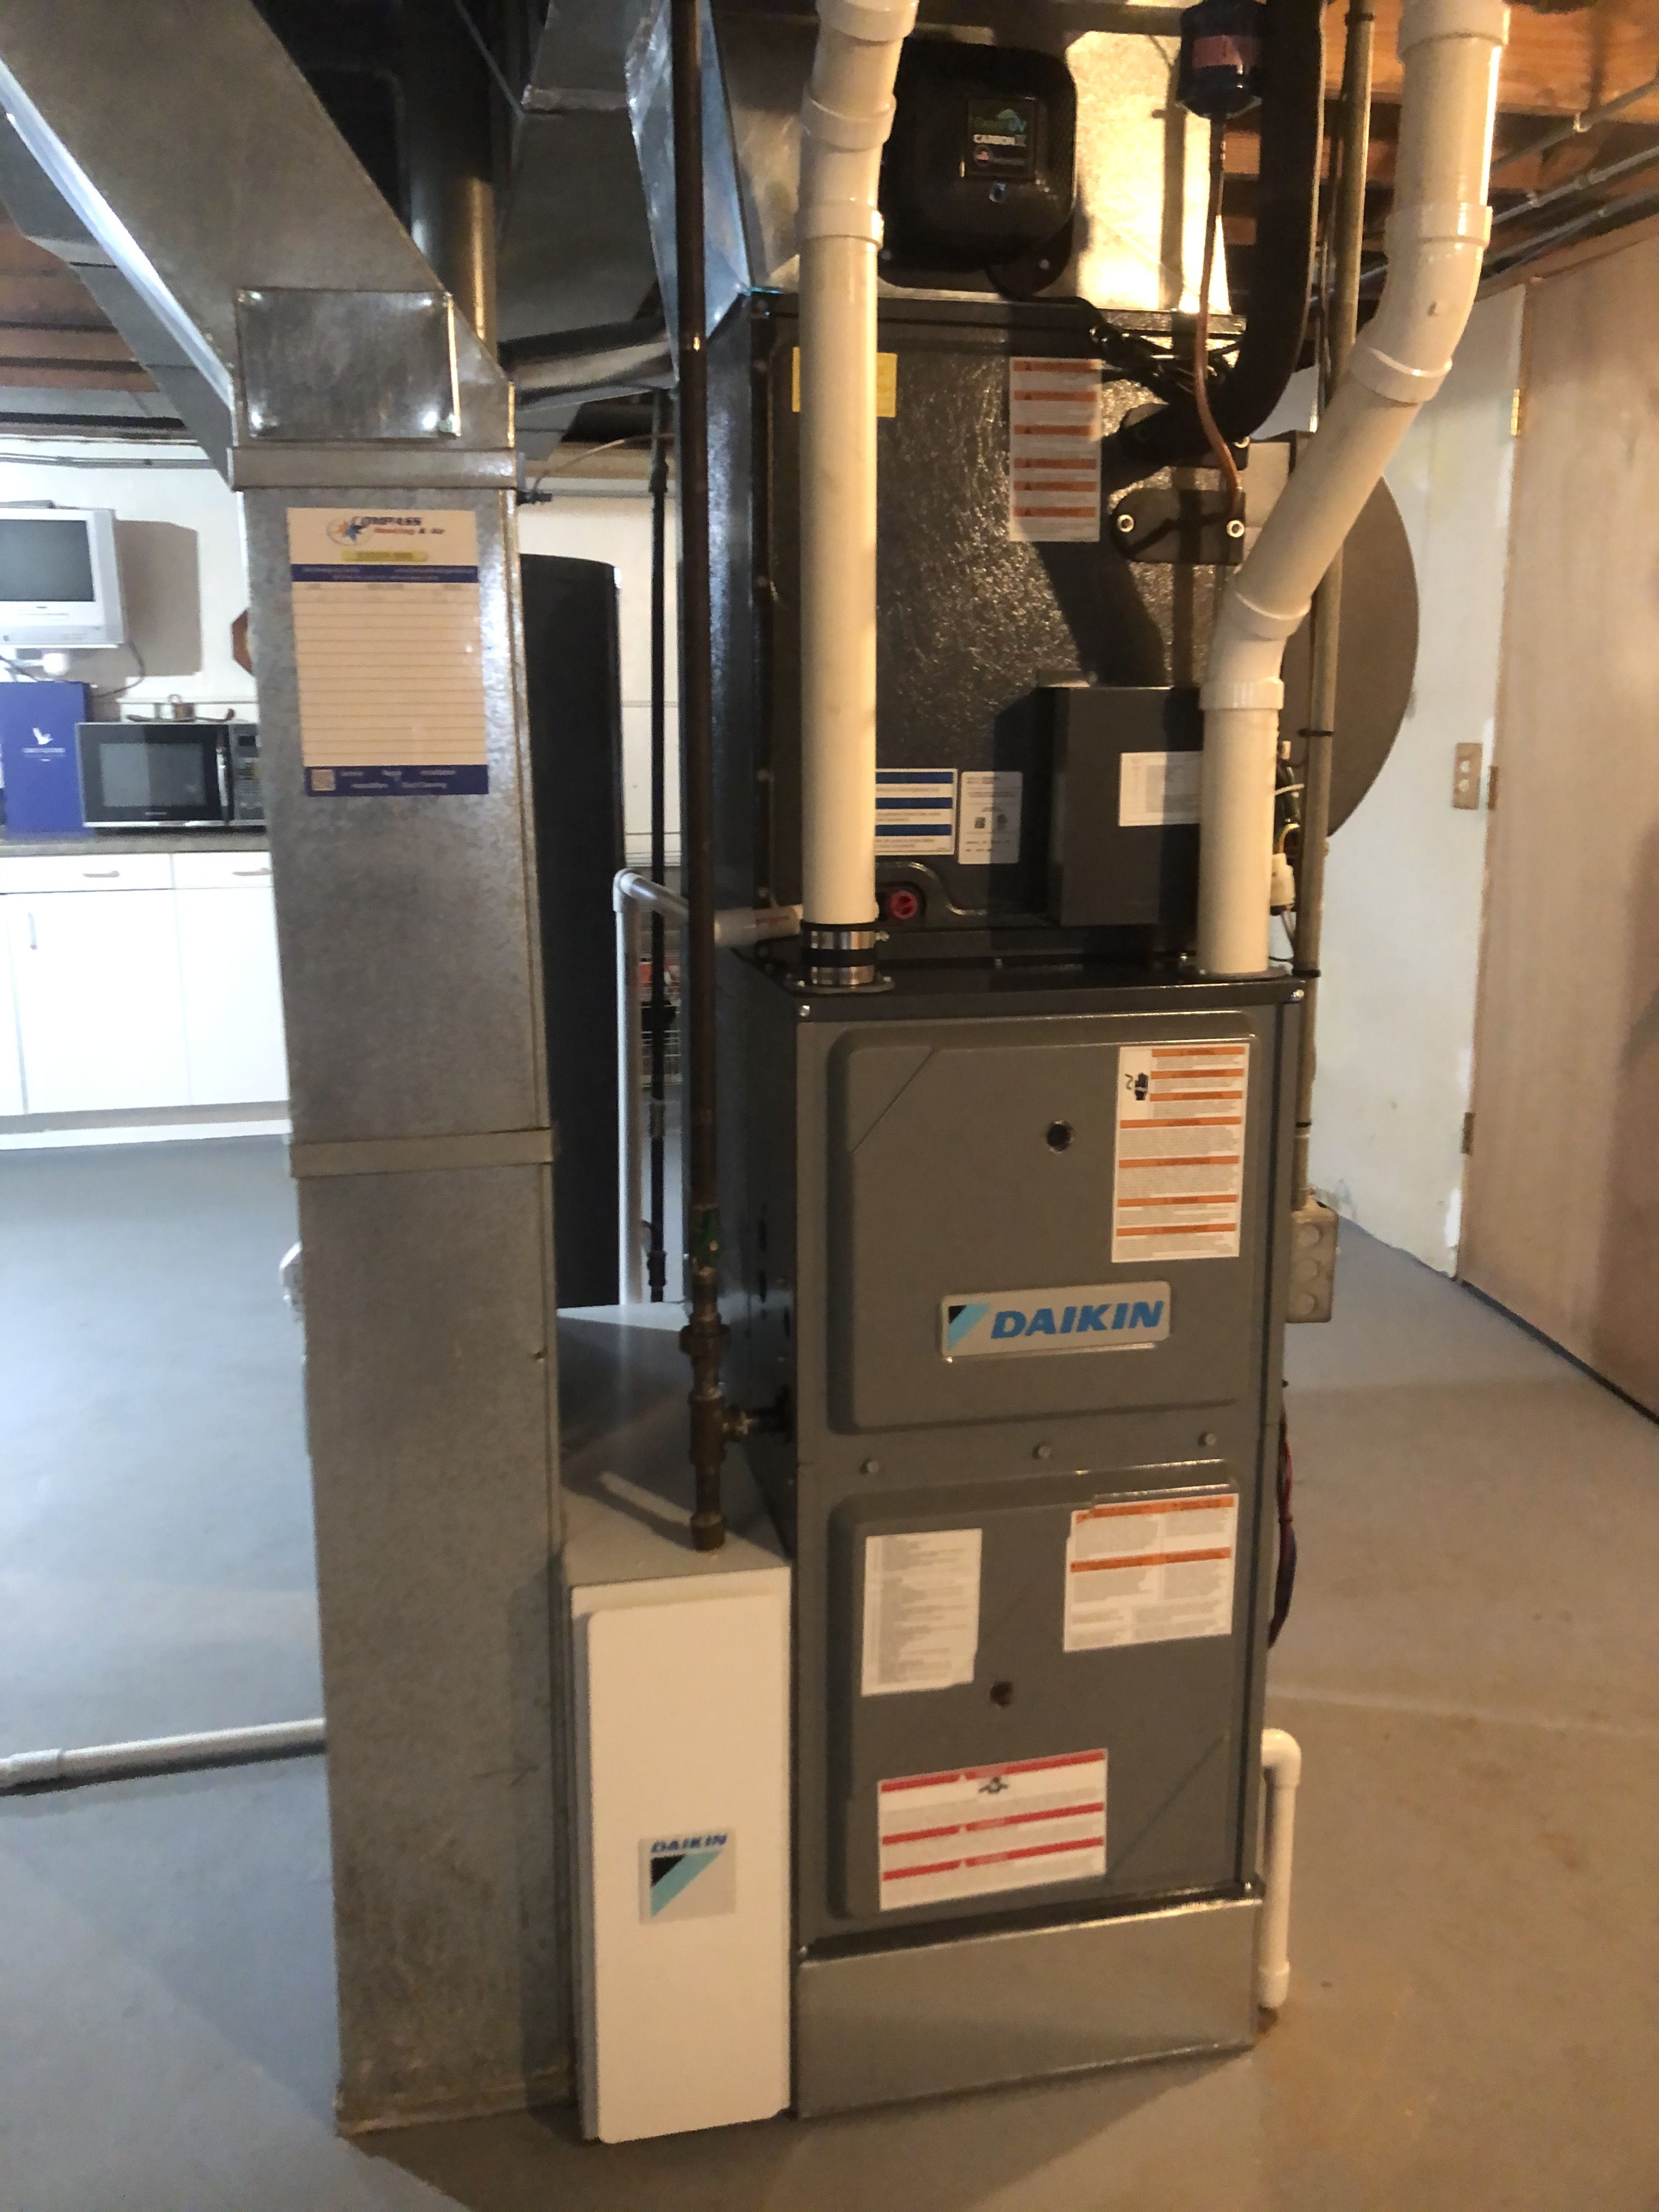 Daikin 98 modulating furnace w/ Daikin One MERV 15 air